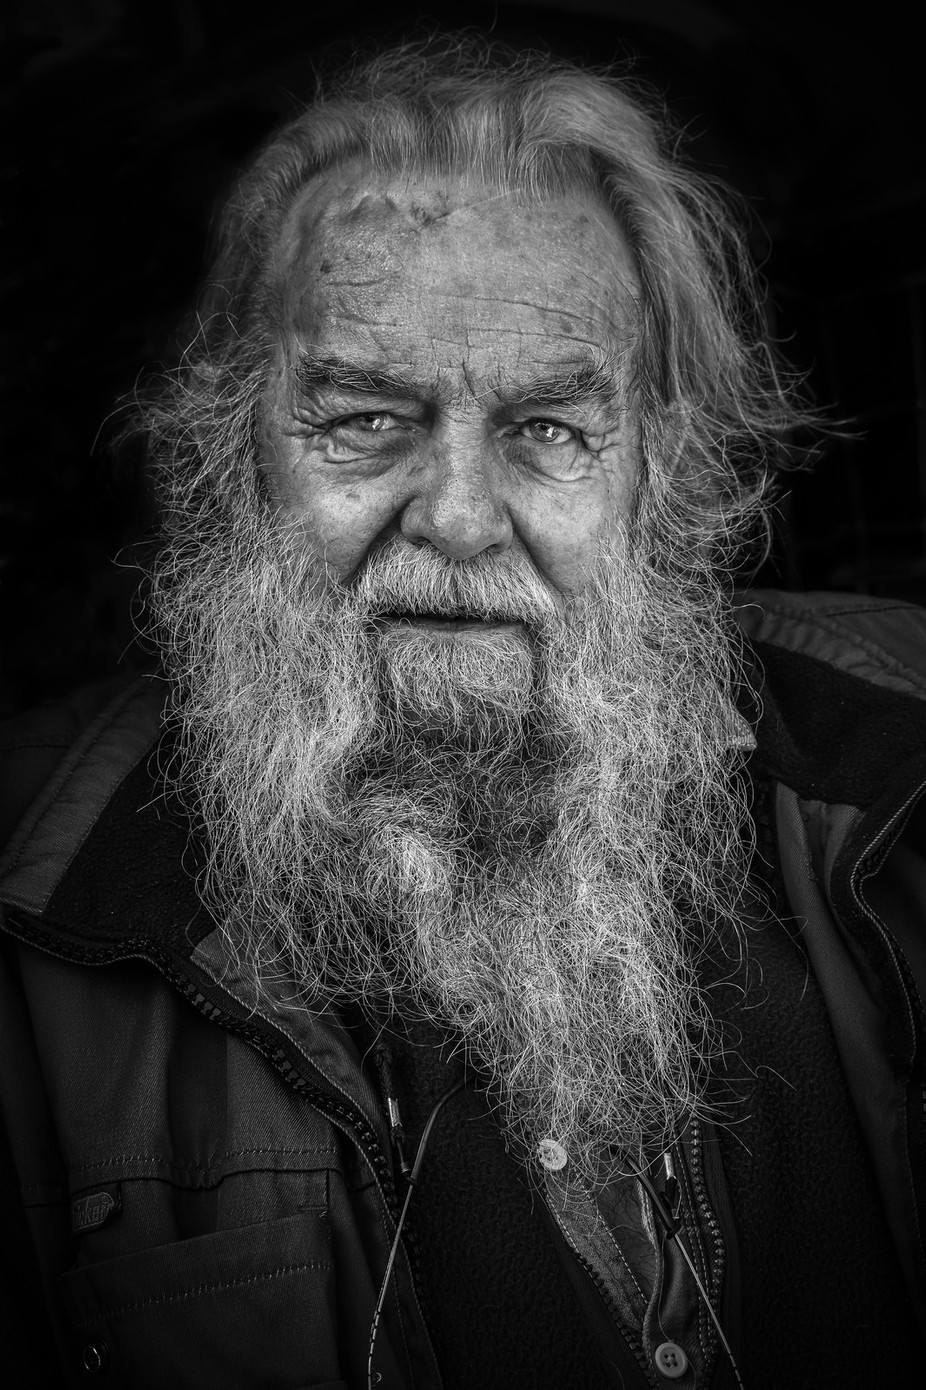 A Life Lived  by eileenmc - Beards and Mustaches Photo Contest